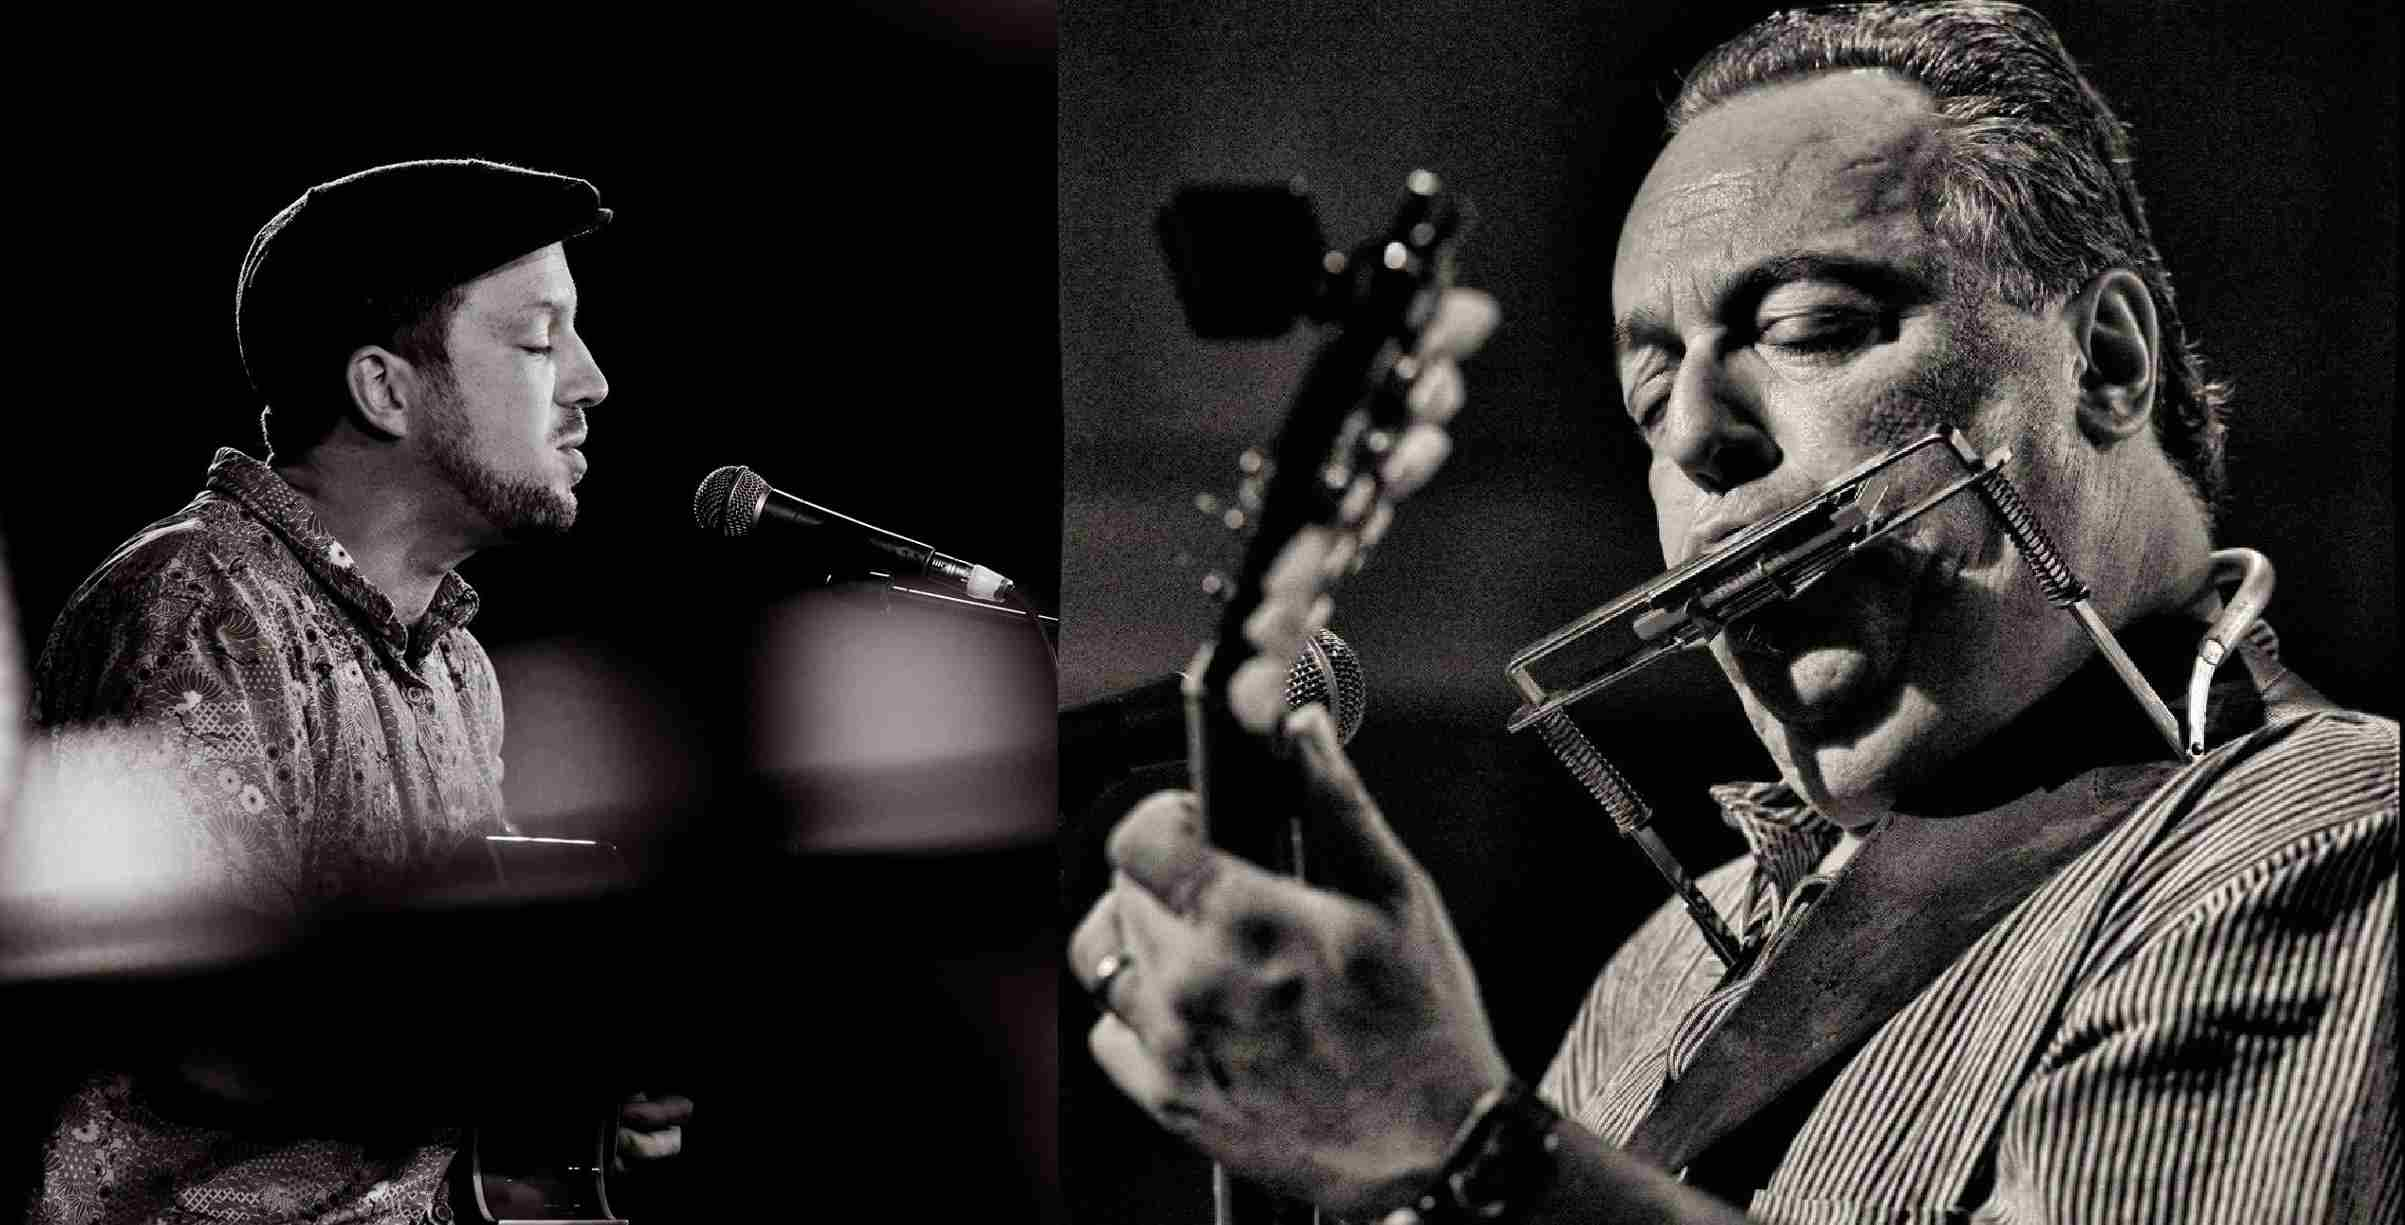 Richard Ray Farrell and Richard Farrell